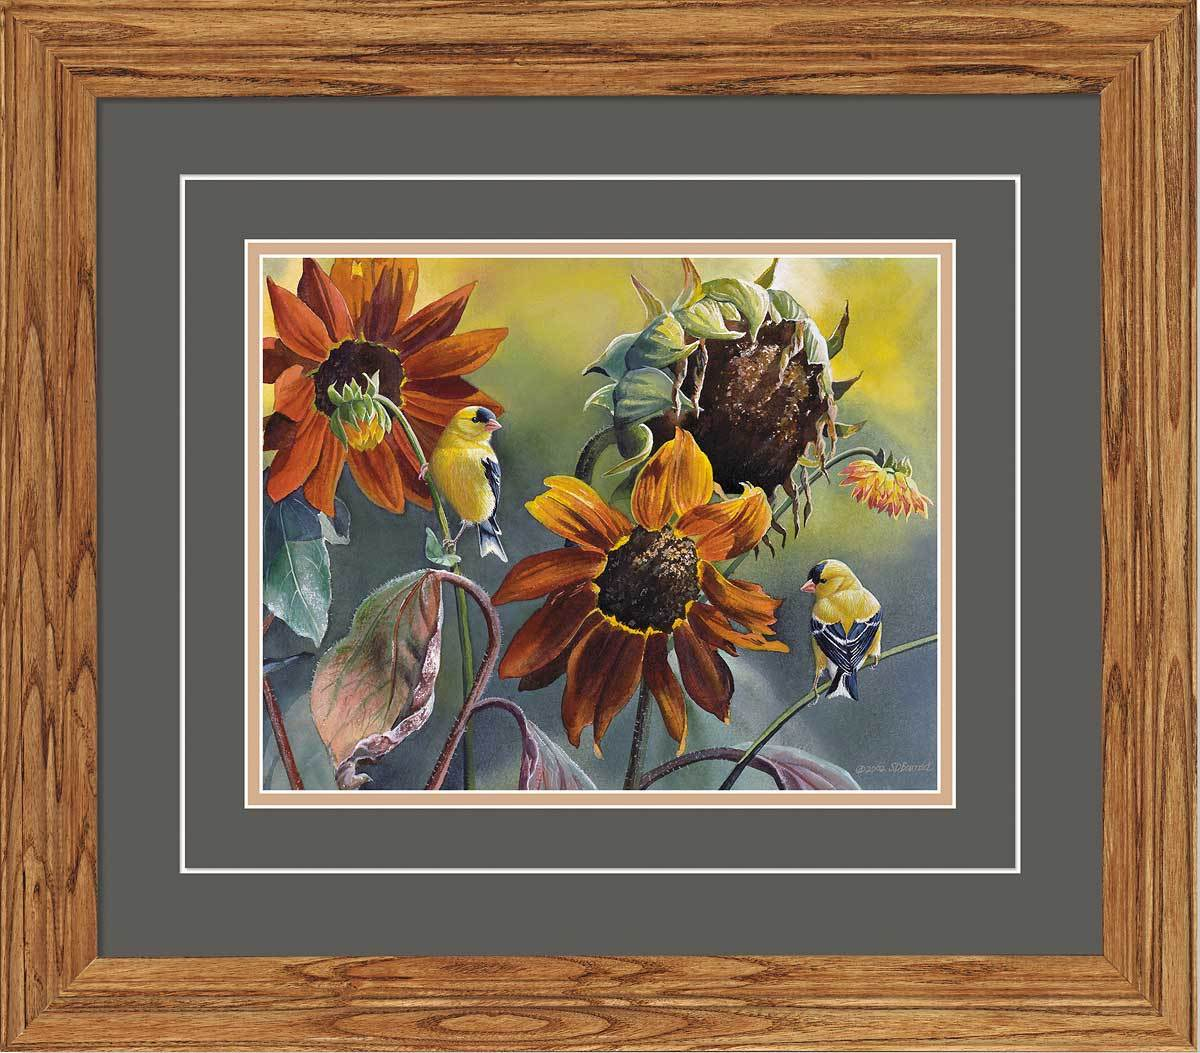 <I>Sun Seekers&mdash;goldfinches</i> Gna Deluxe Framed Print